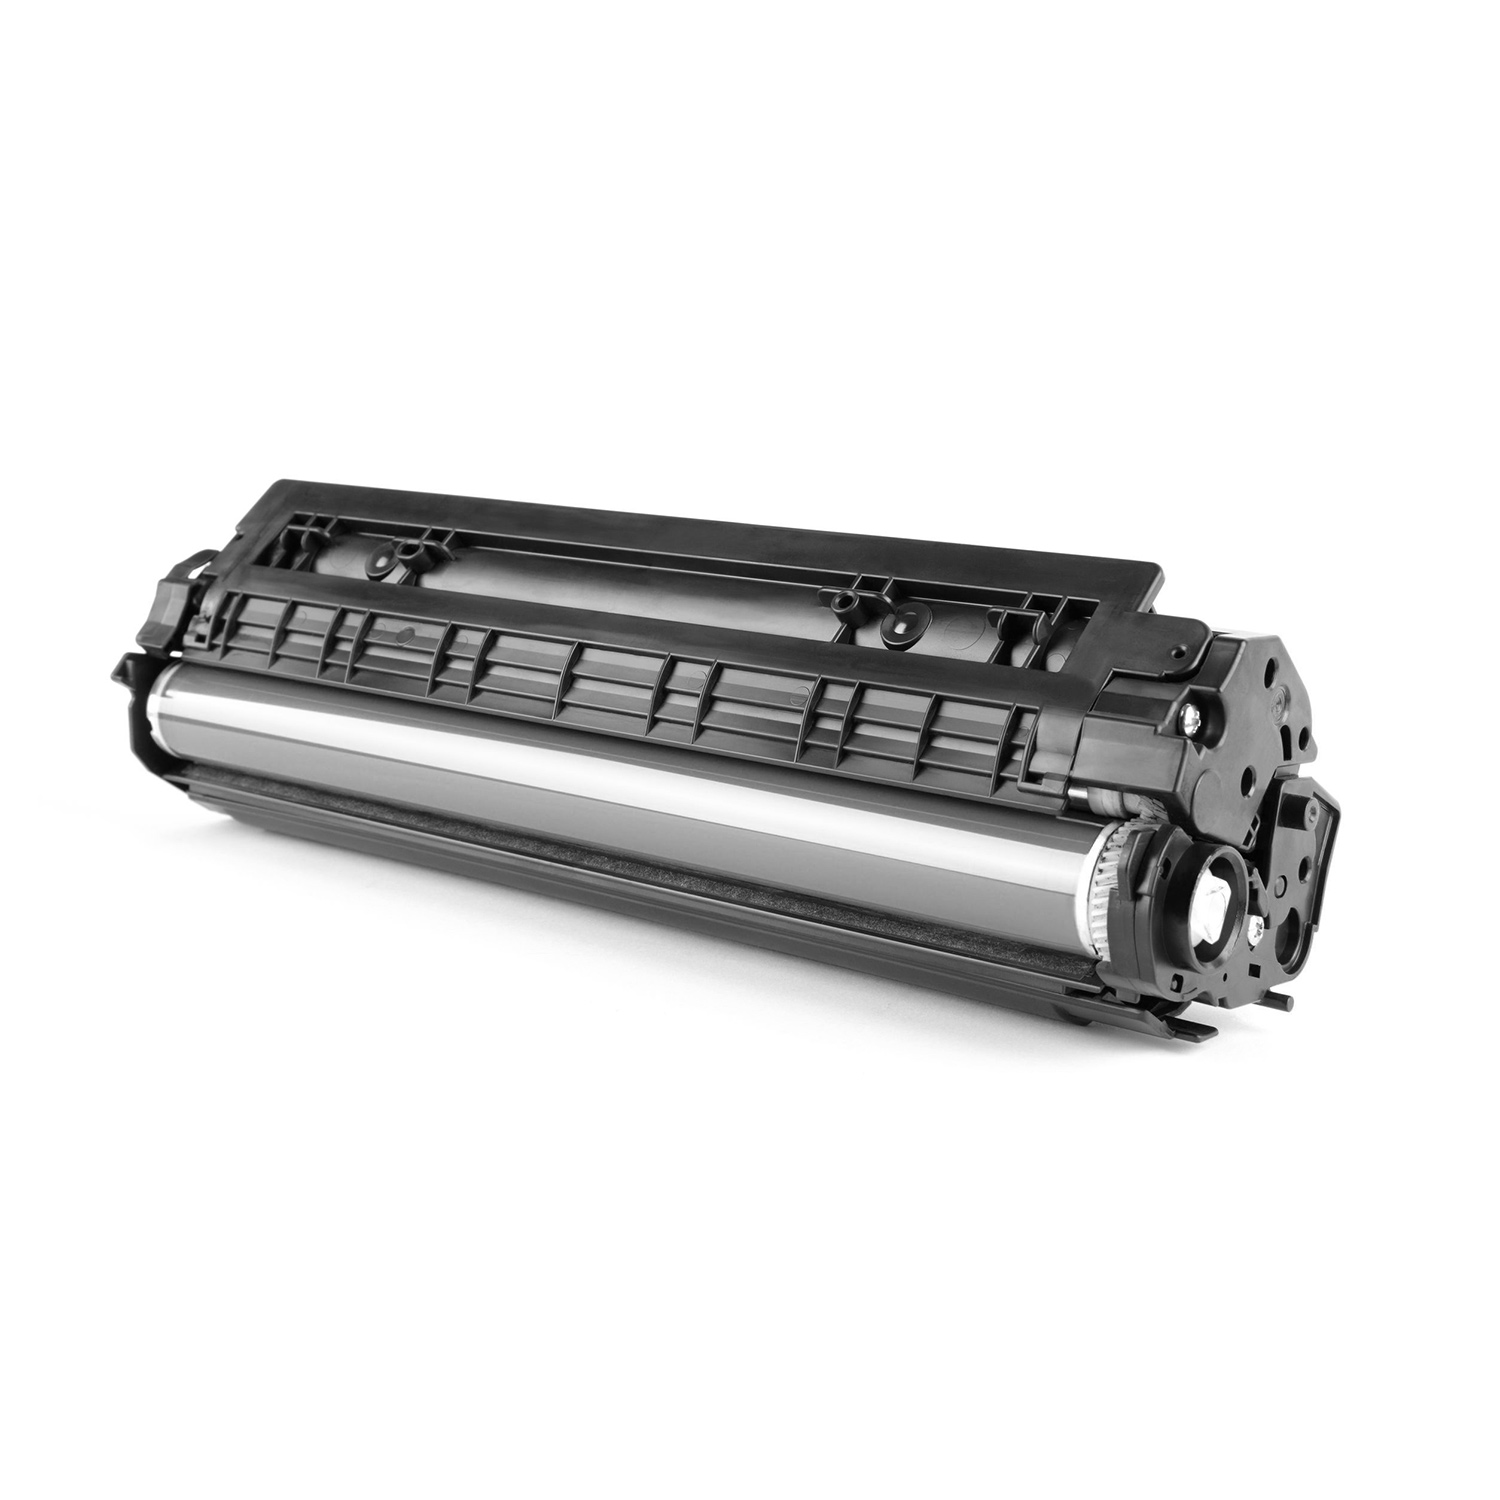 TonerPartenaire Samsung ML-1520D3 Toner noir (2x 3.000 pages) Lot de 2